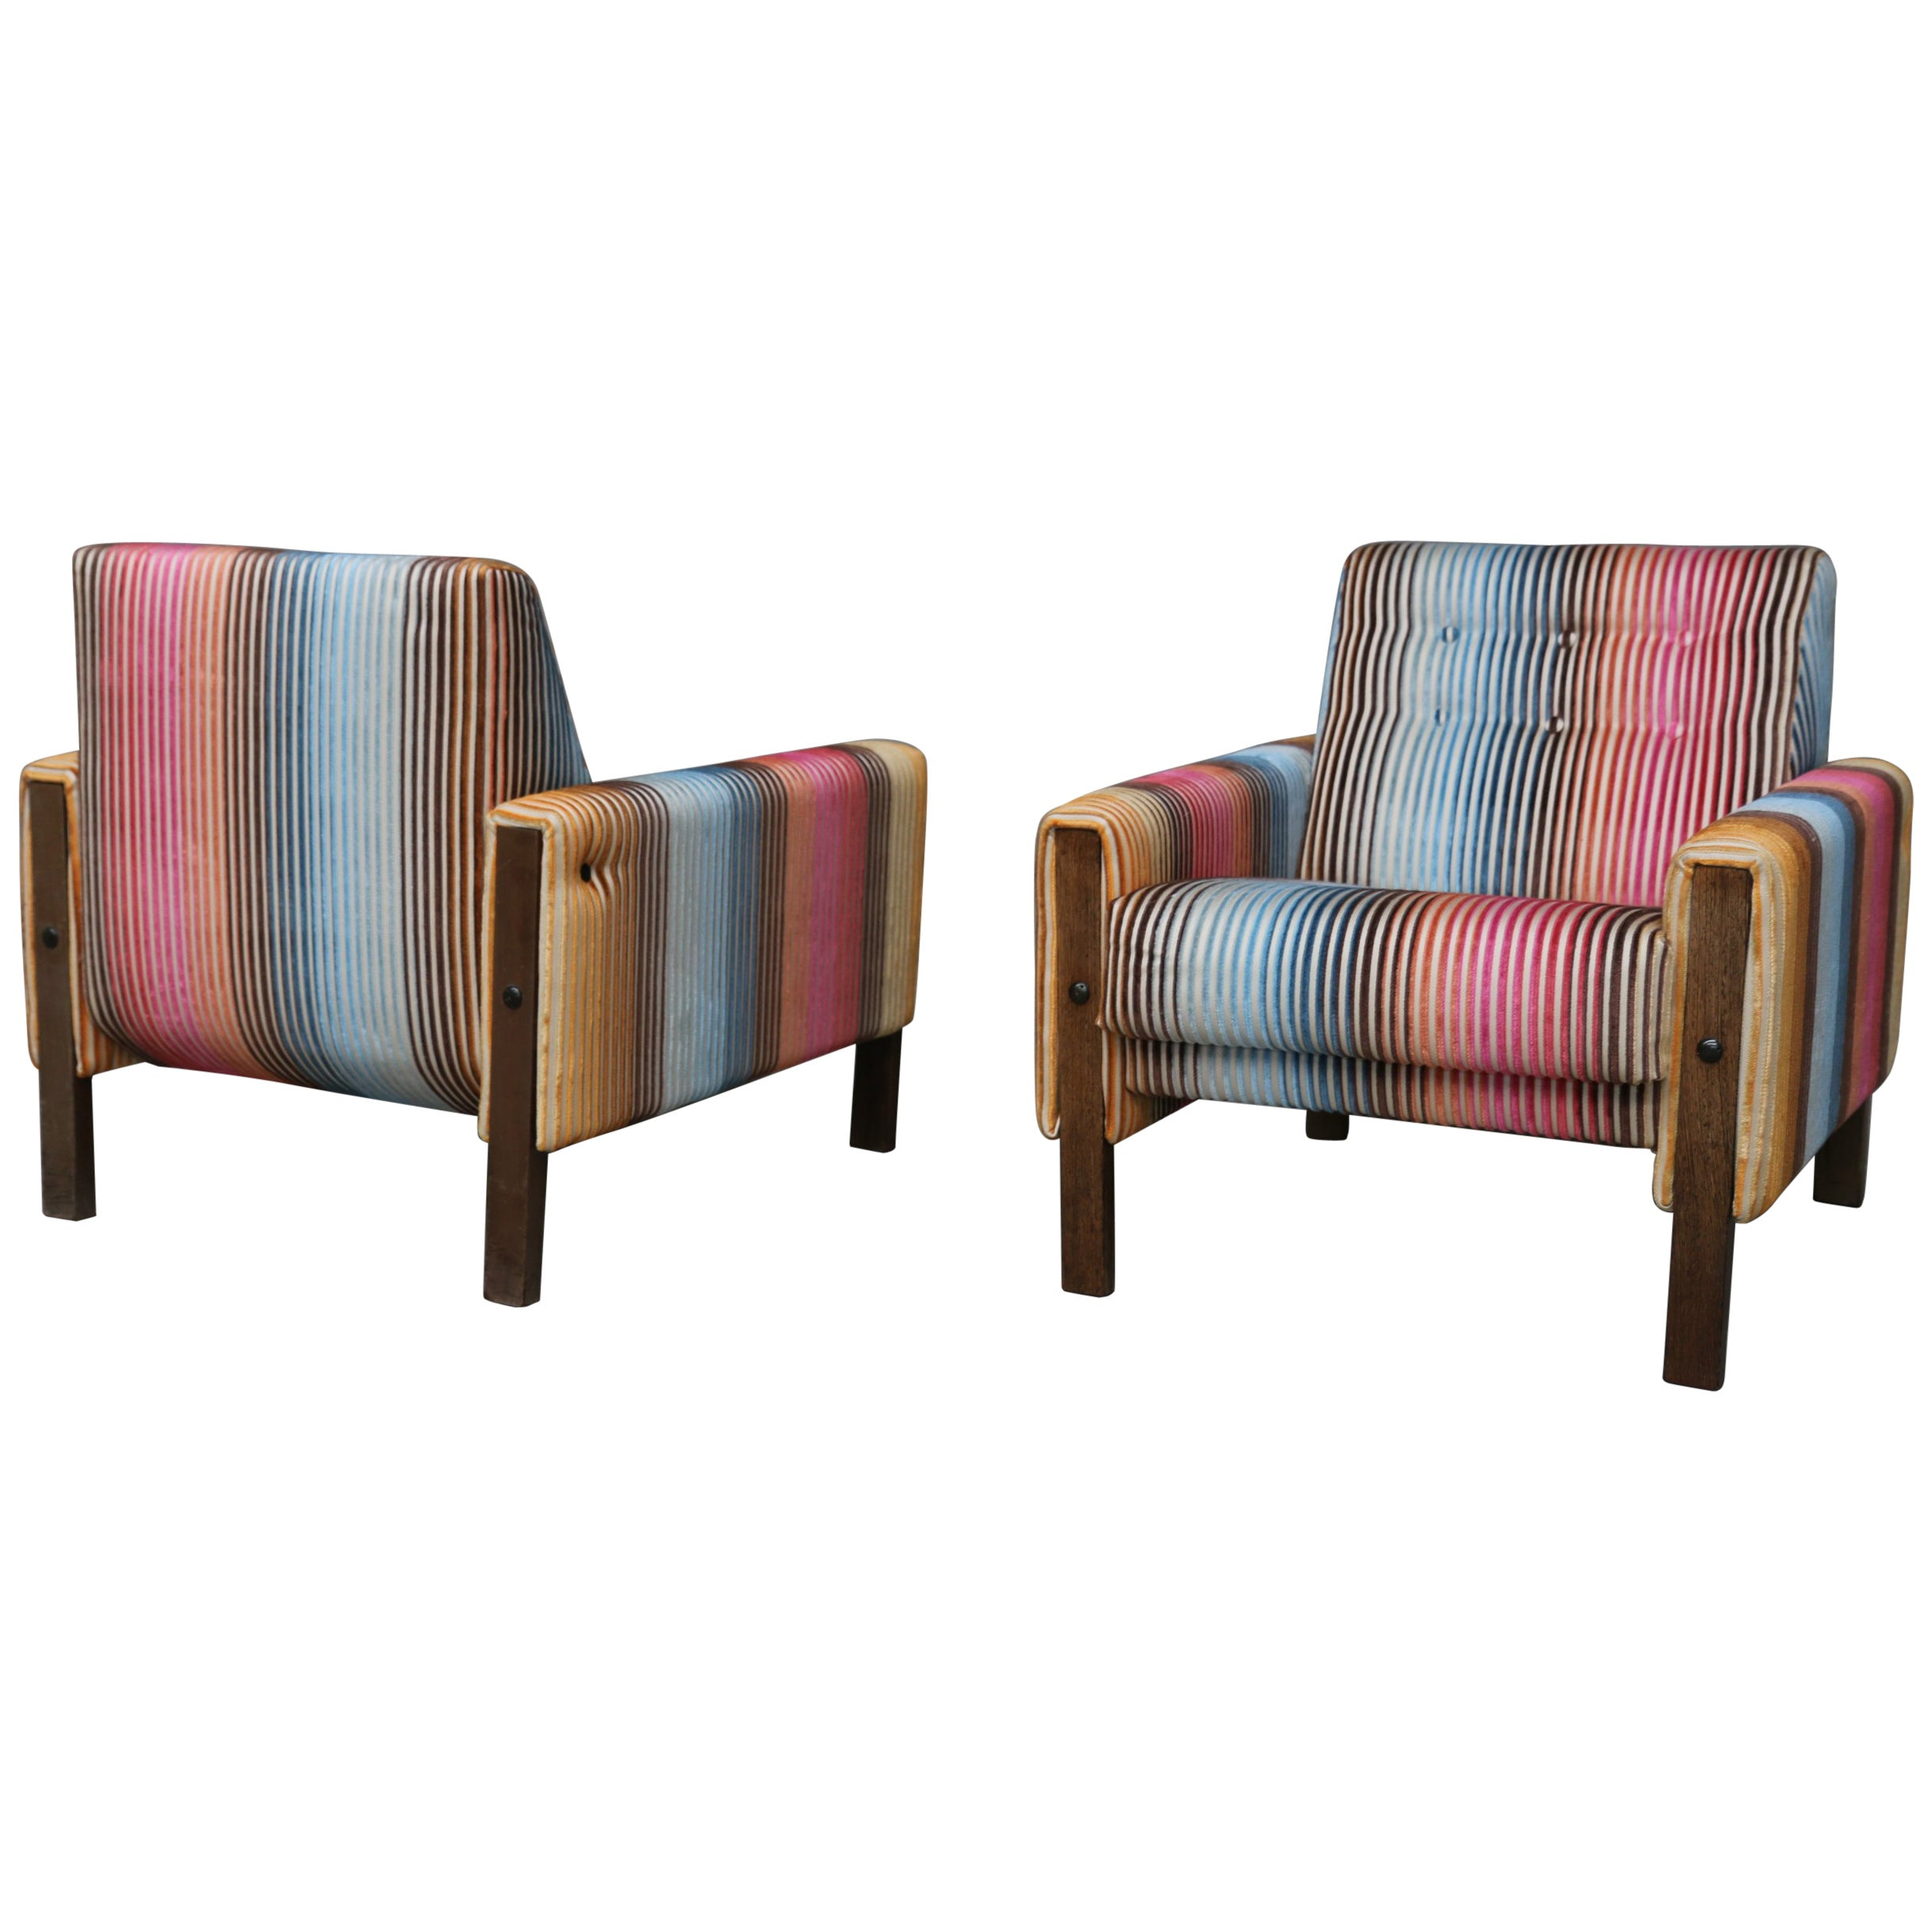 1950S Lounge Armchairs Re Upholstered In Multicolored Missoni Fabric For Sale